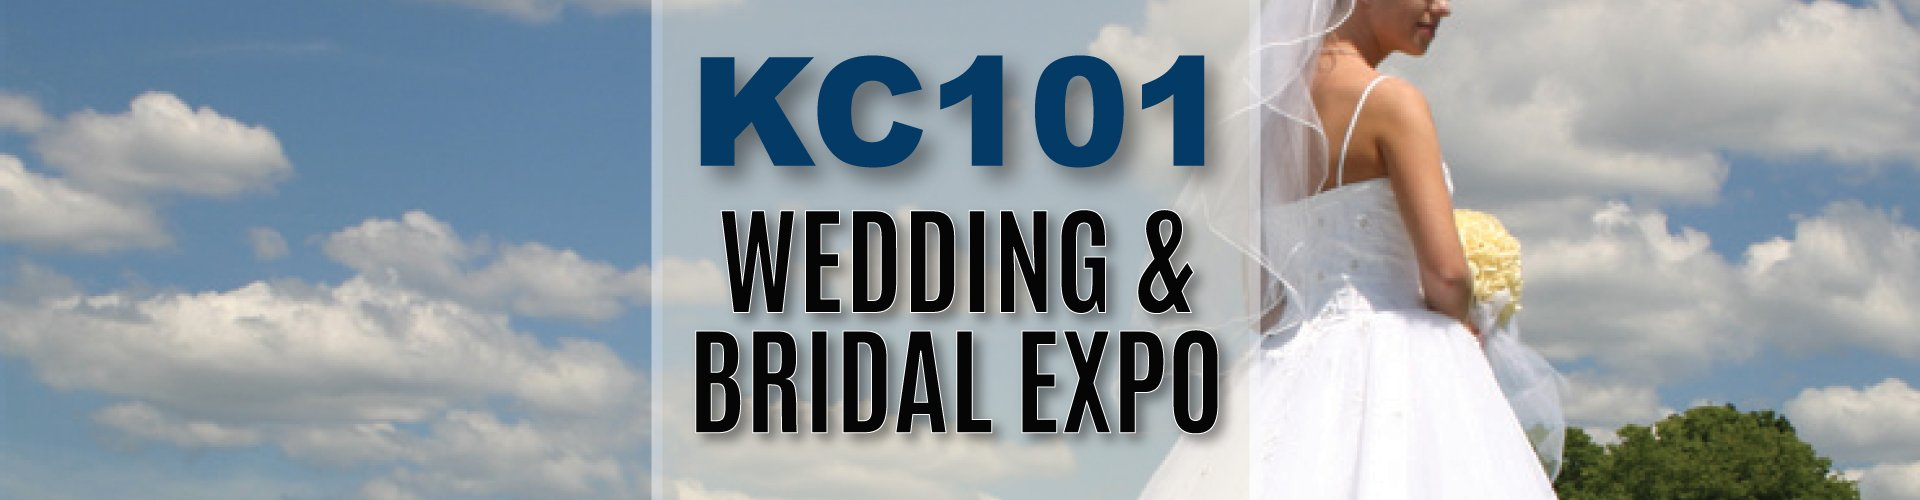 The KC101 Wedding & Bridal Expo 2018 - New Haven CT Wedding Show ...